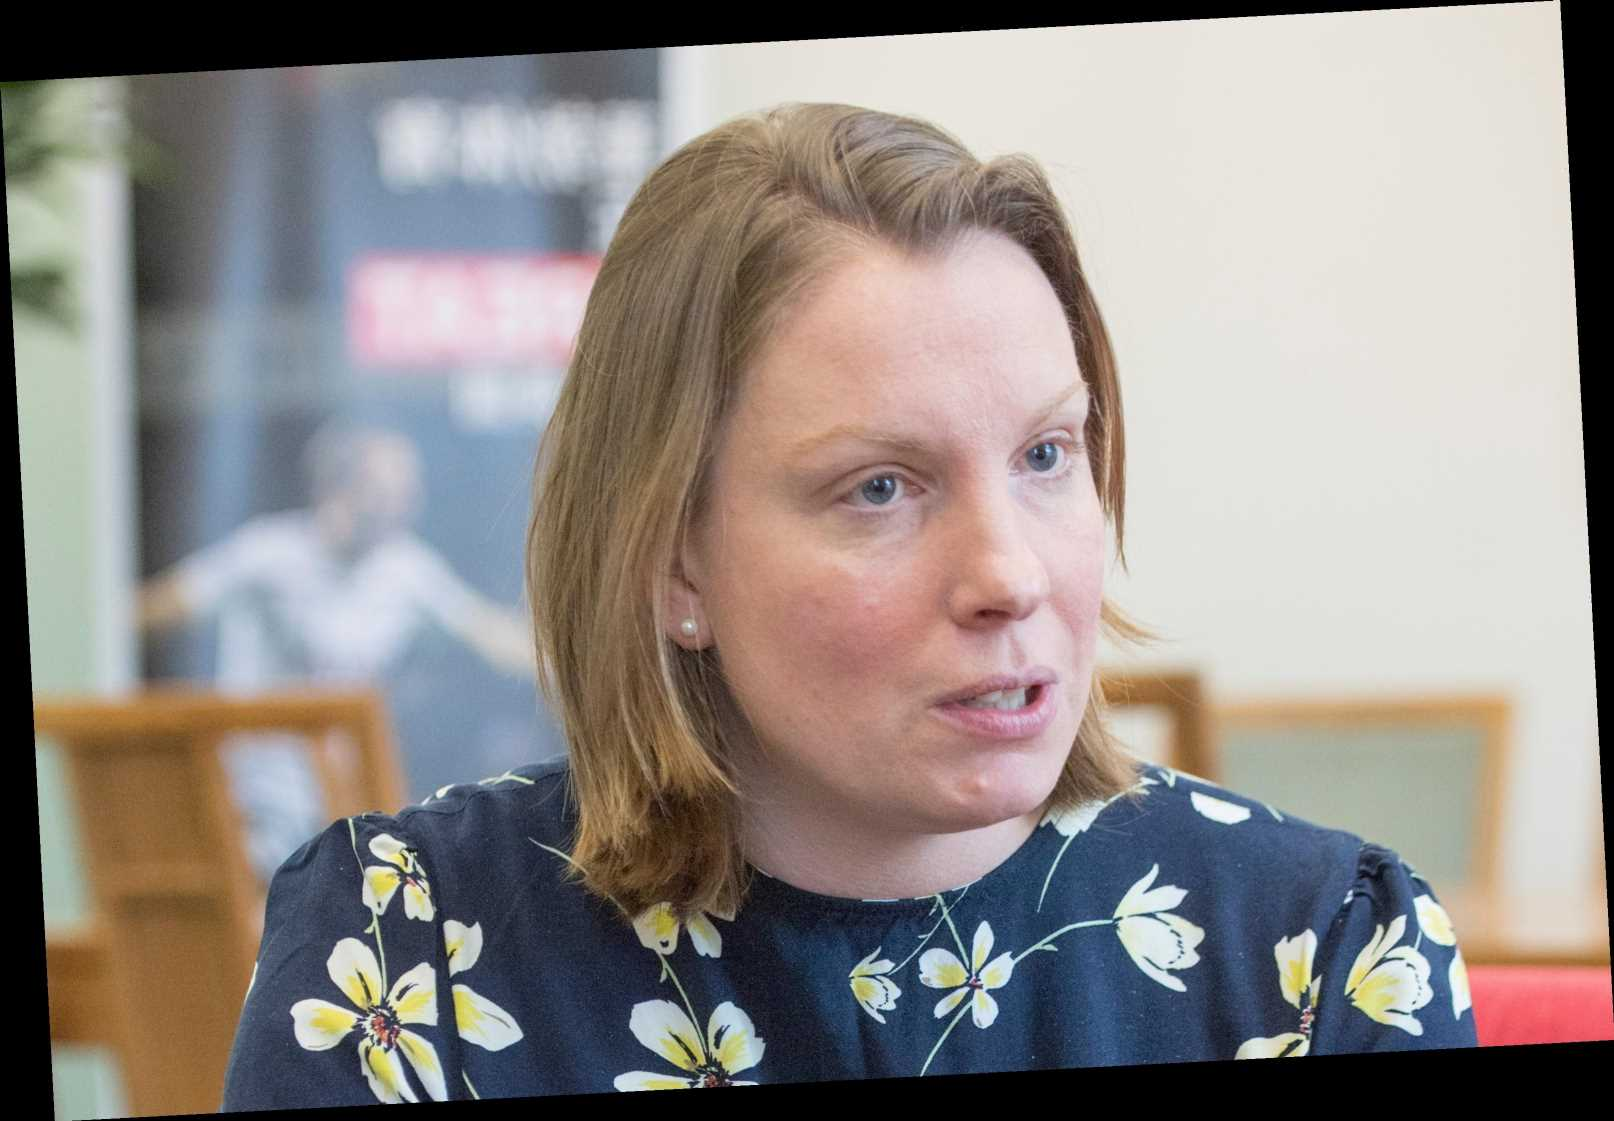 MP Tracey Crouch who's battling breast cancer blasts rules that ban her taking part in debate on the illness